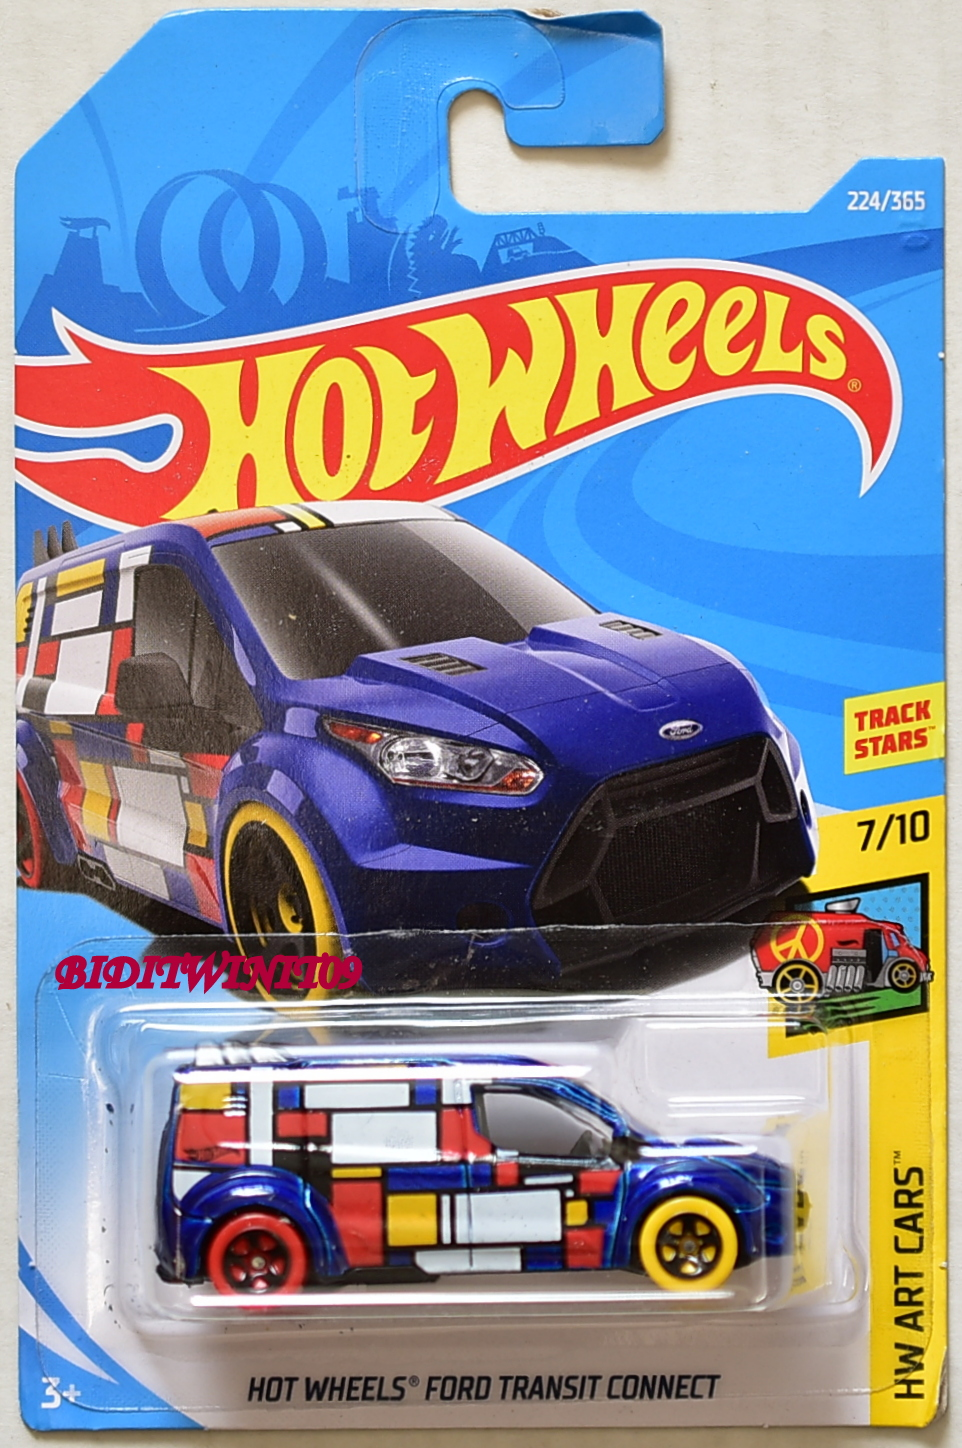 HOT WHEELS 2018 HW ART CARS HOT WHEELS FORD TRANSIT CONCEPT BLUE